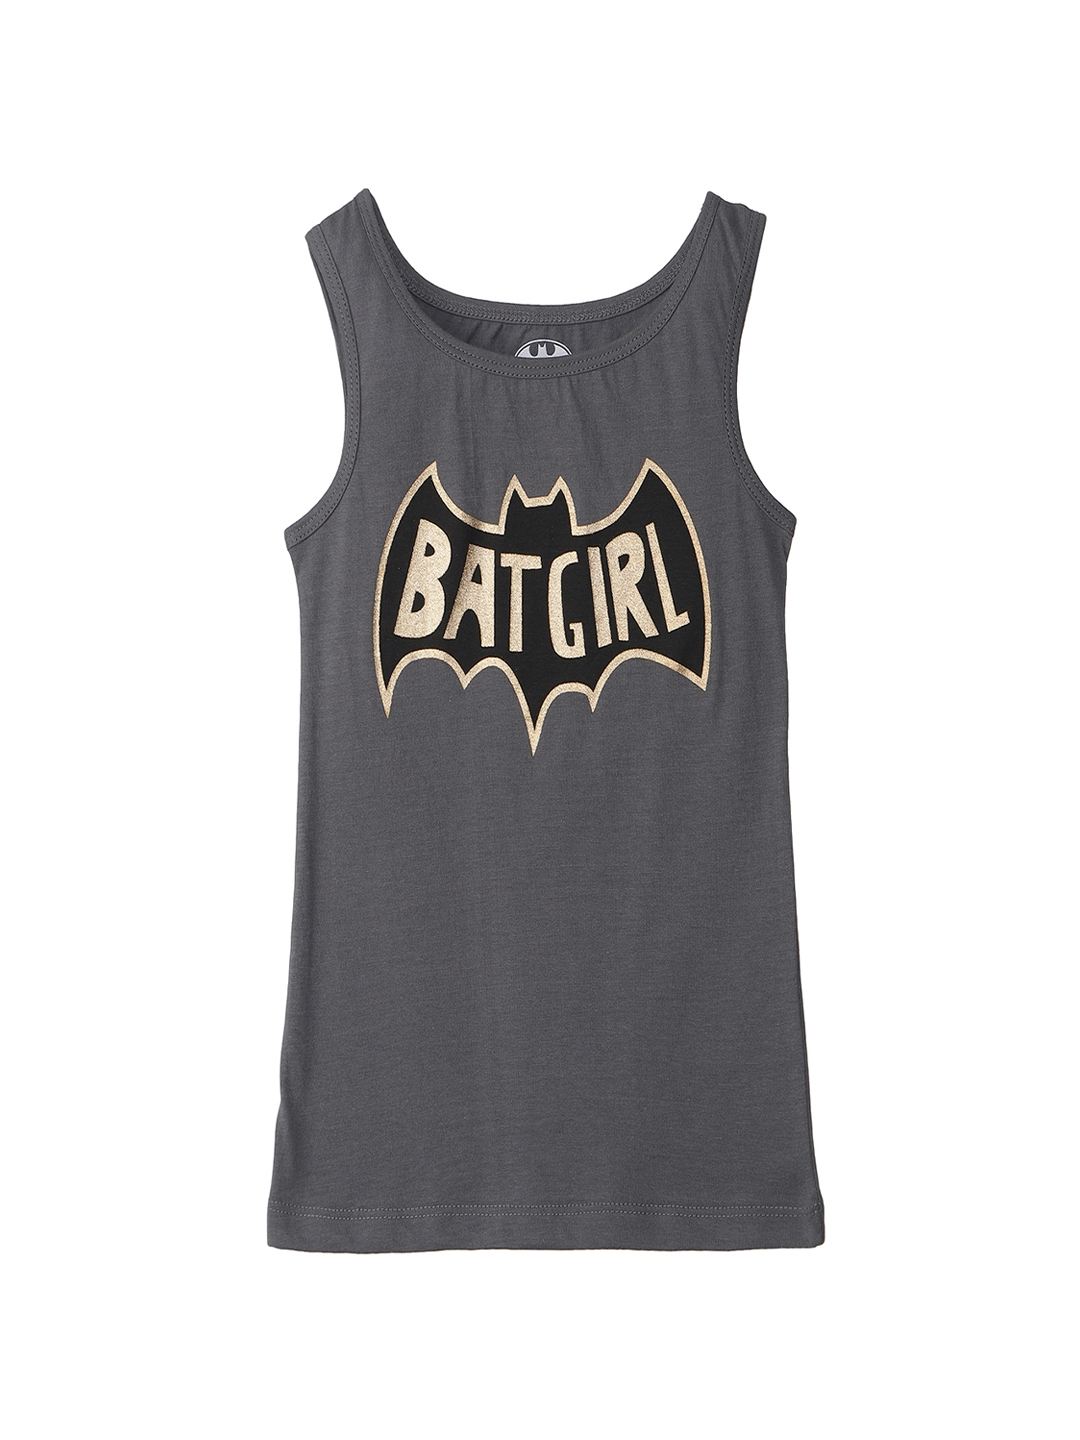 788b424b544e8 Buy Bat Girl By Kidsville Grey Printed Round Neck T Shirt - Tshirts ...